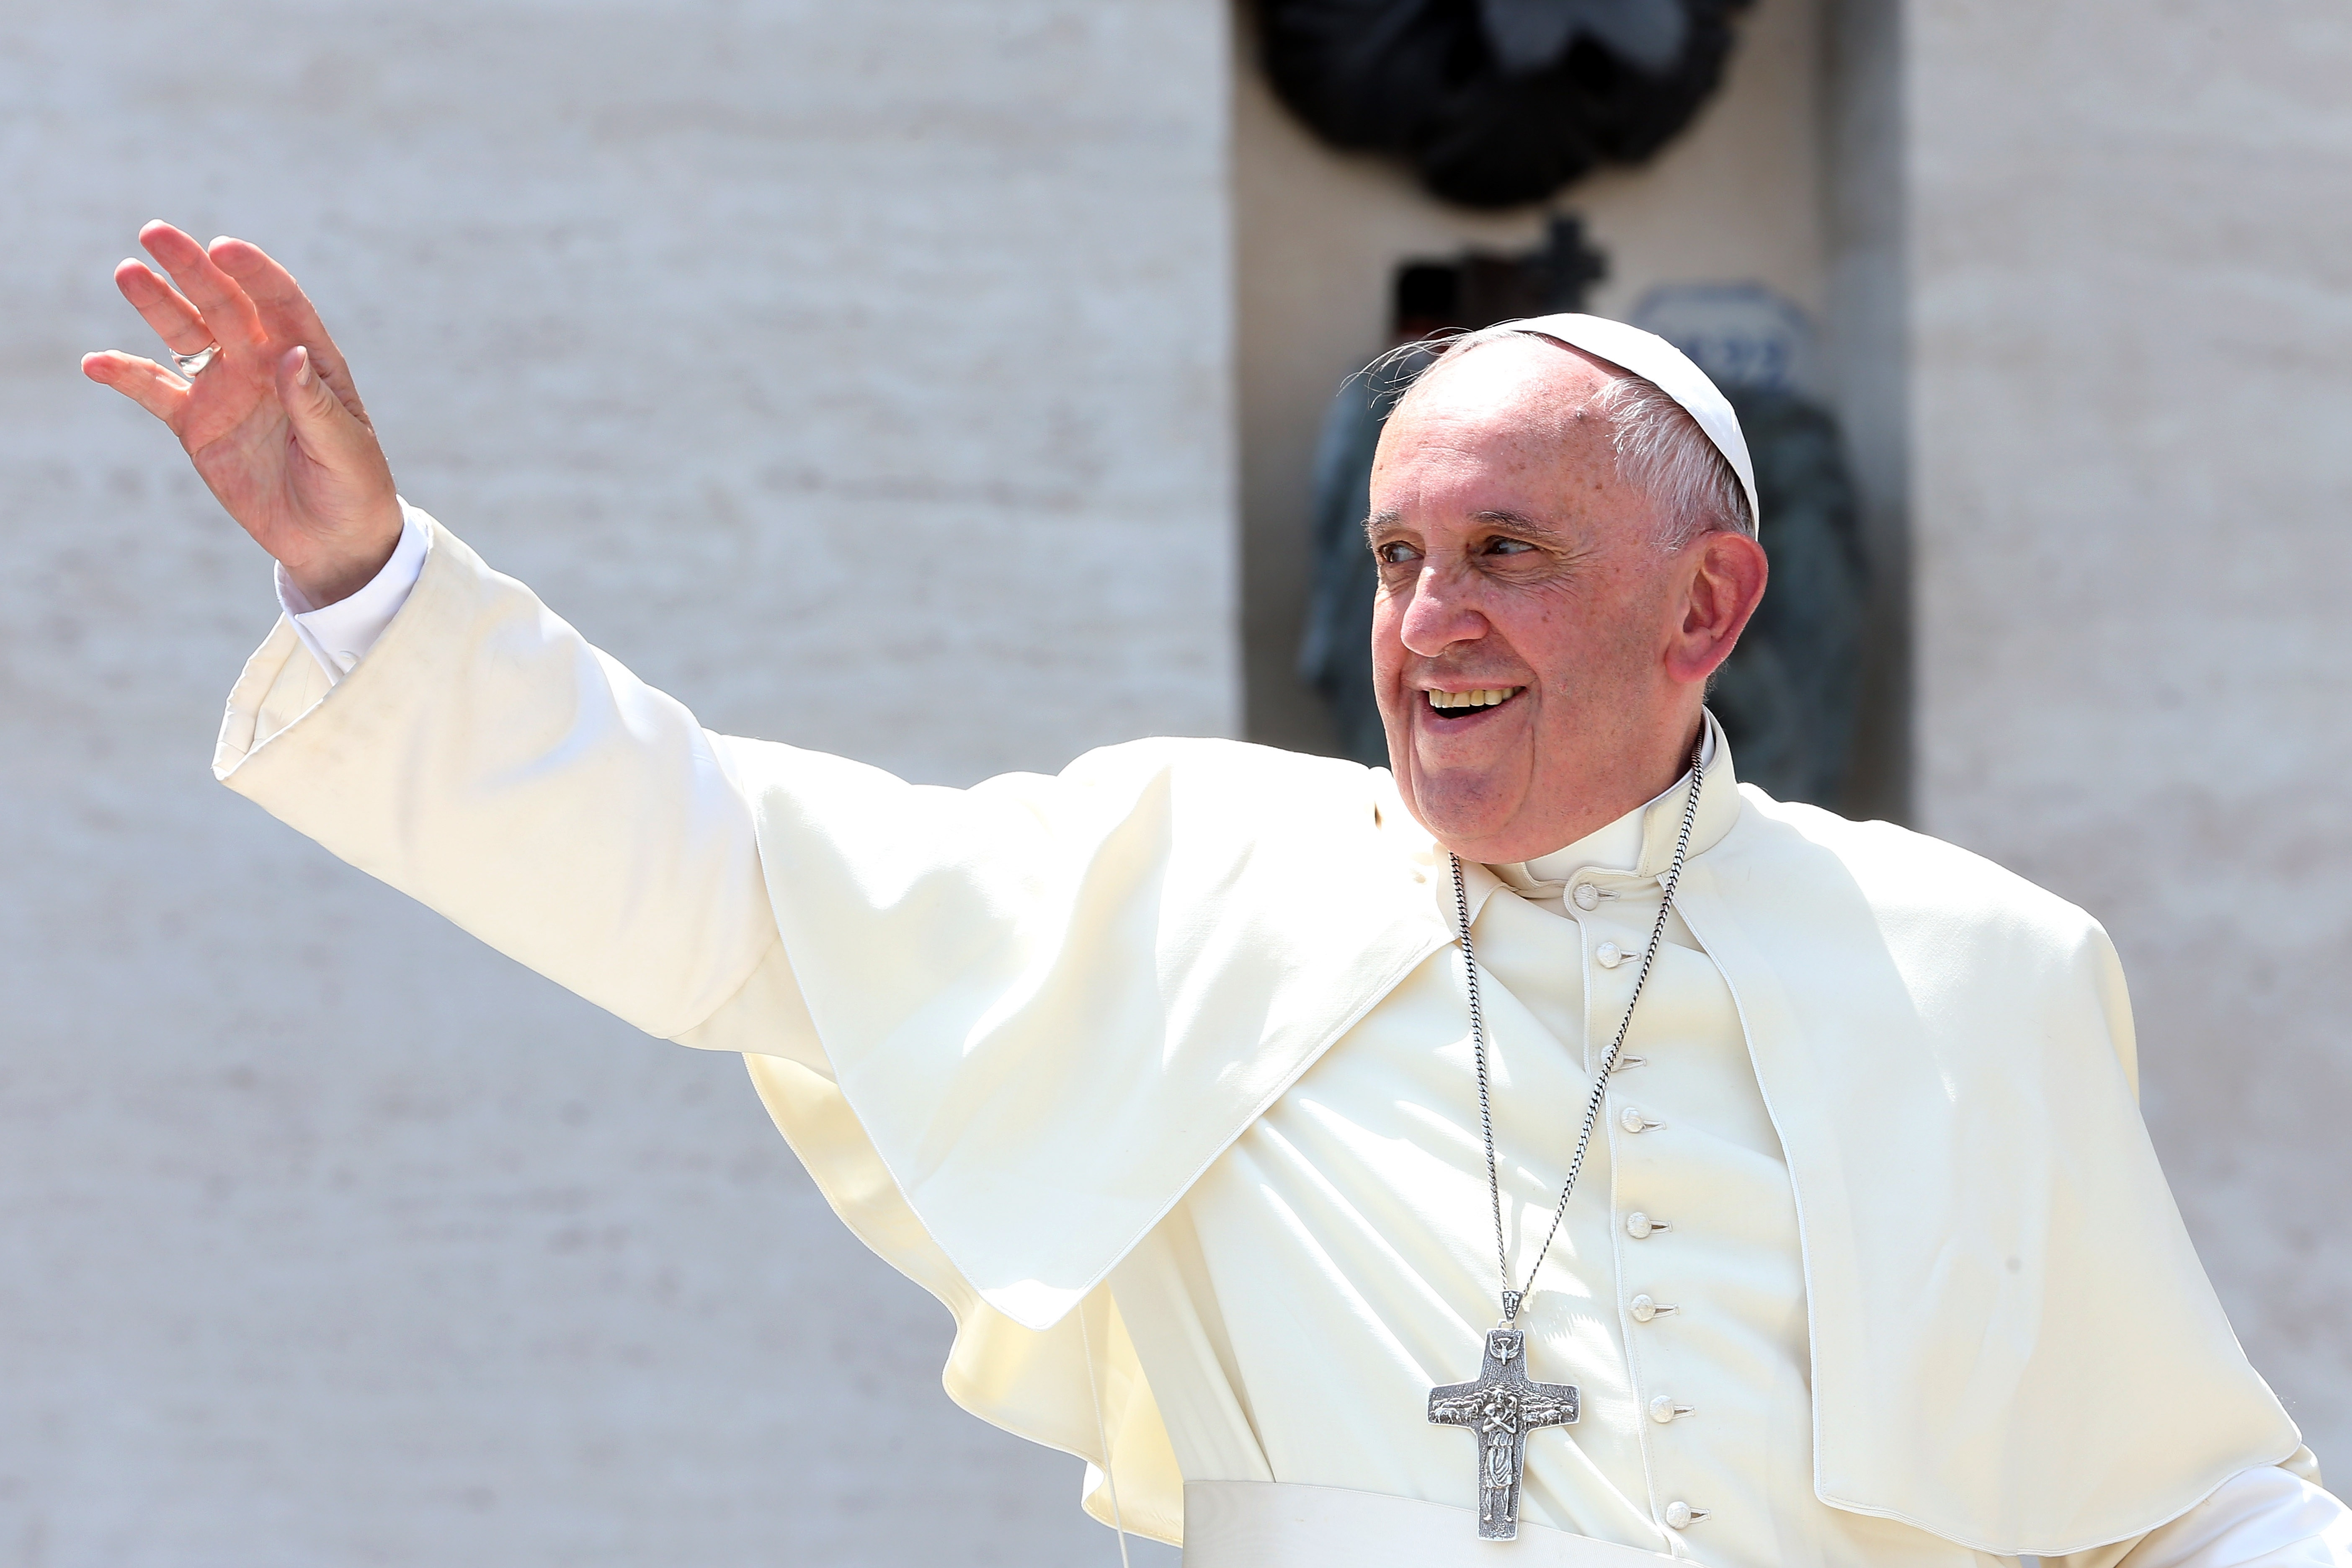 Pope Francis waves to the boy scouts gathered in St. Peter's Square on June 13 in Vatican City, Vatican. The pontiff will address a joint session of Congress on Thursday in Washington, D.C.